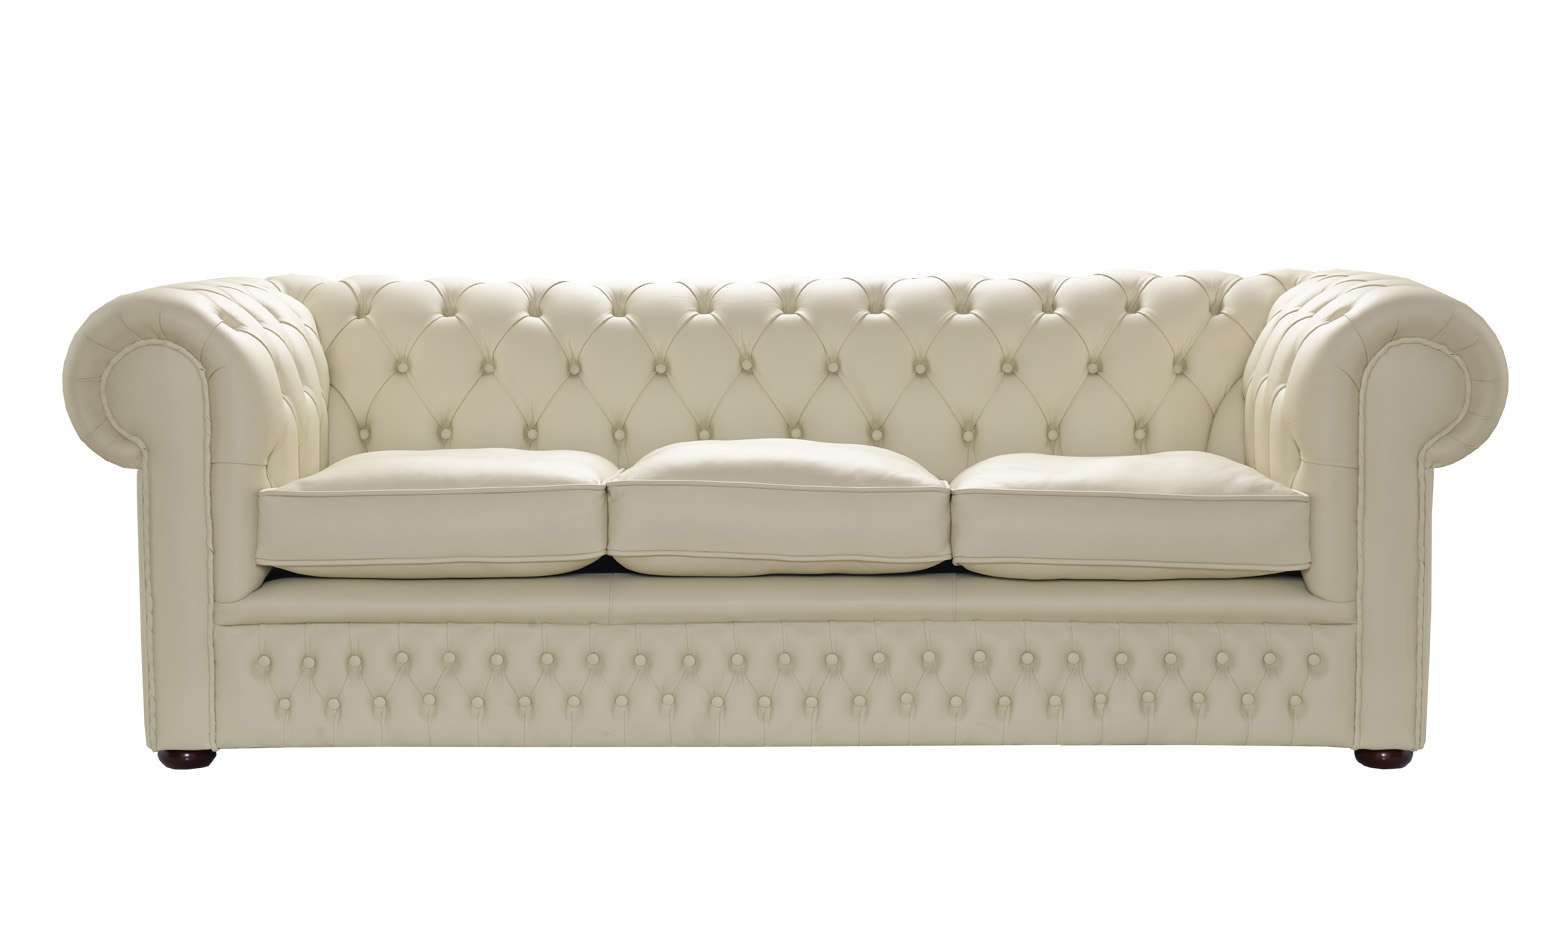 Brilliant Chesterfield Leather Furniture With Chesterfield Leather.